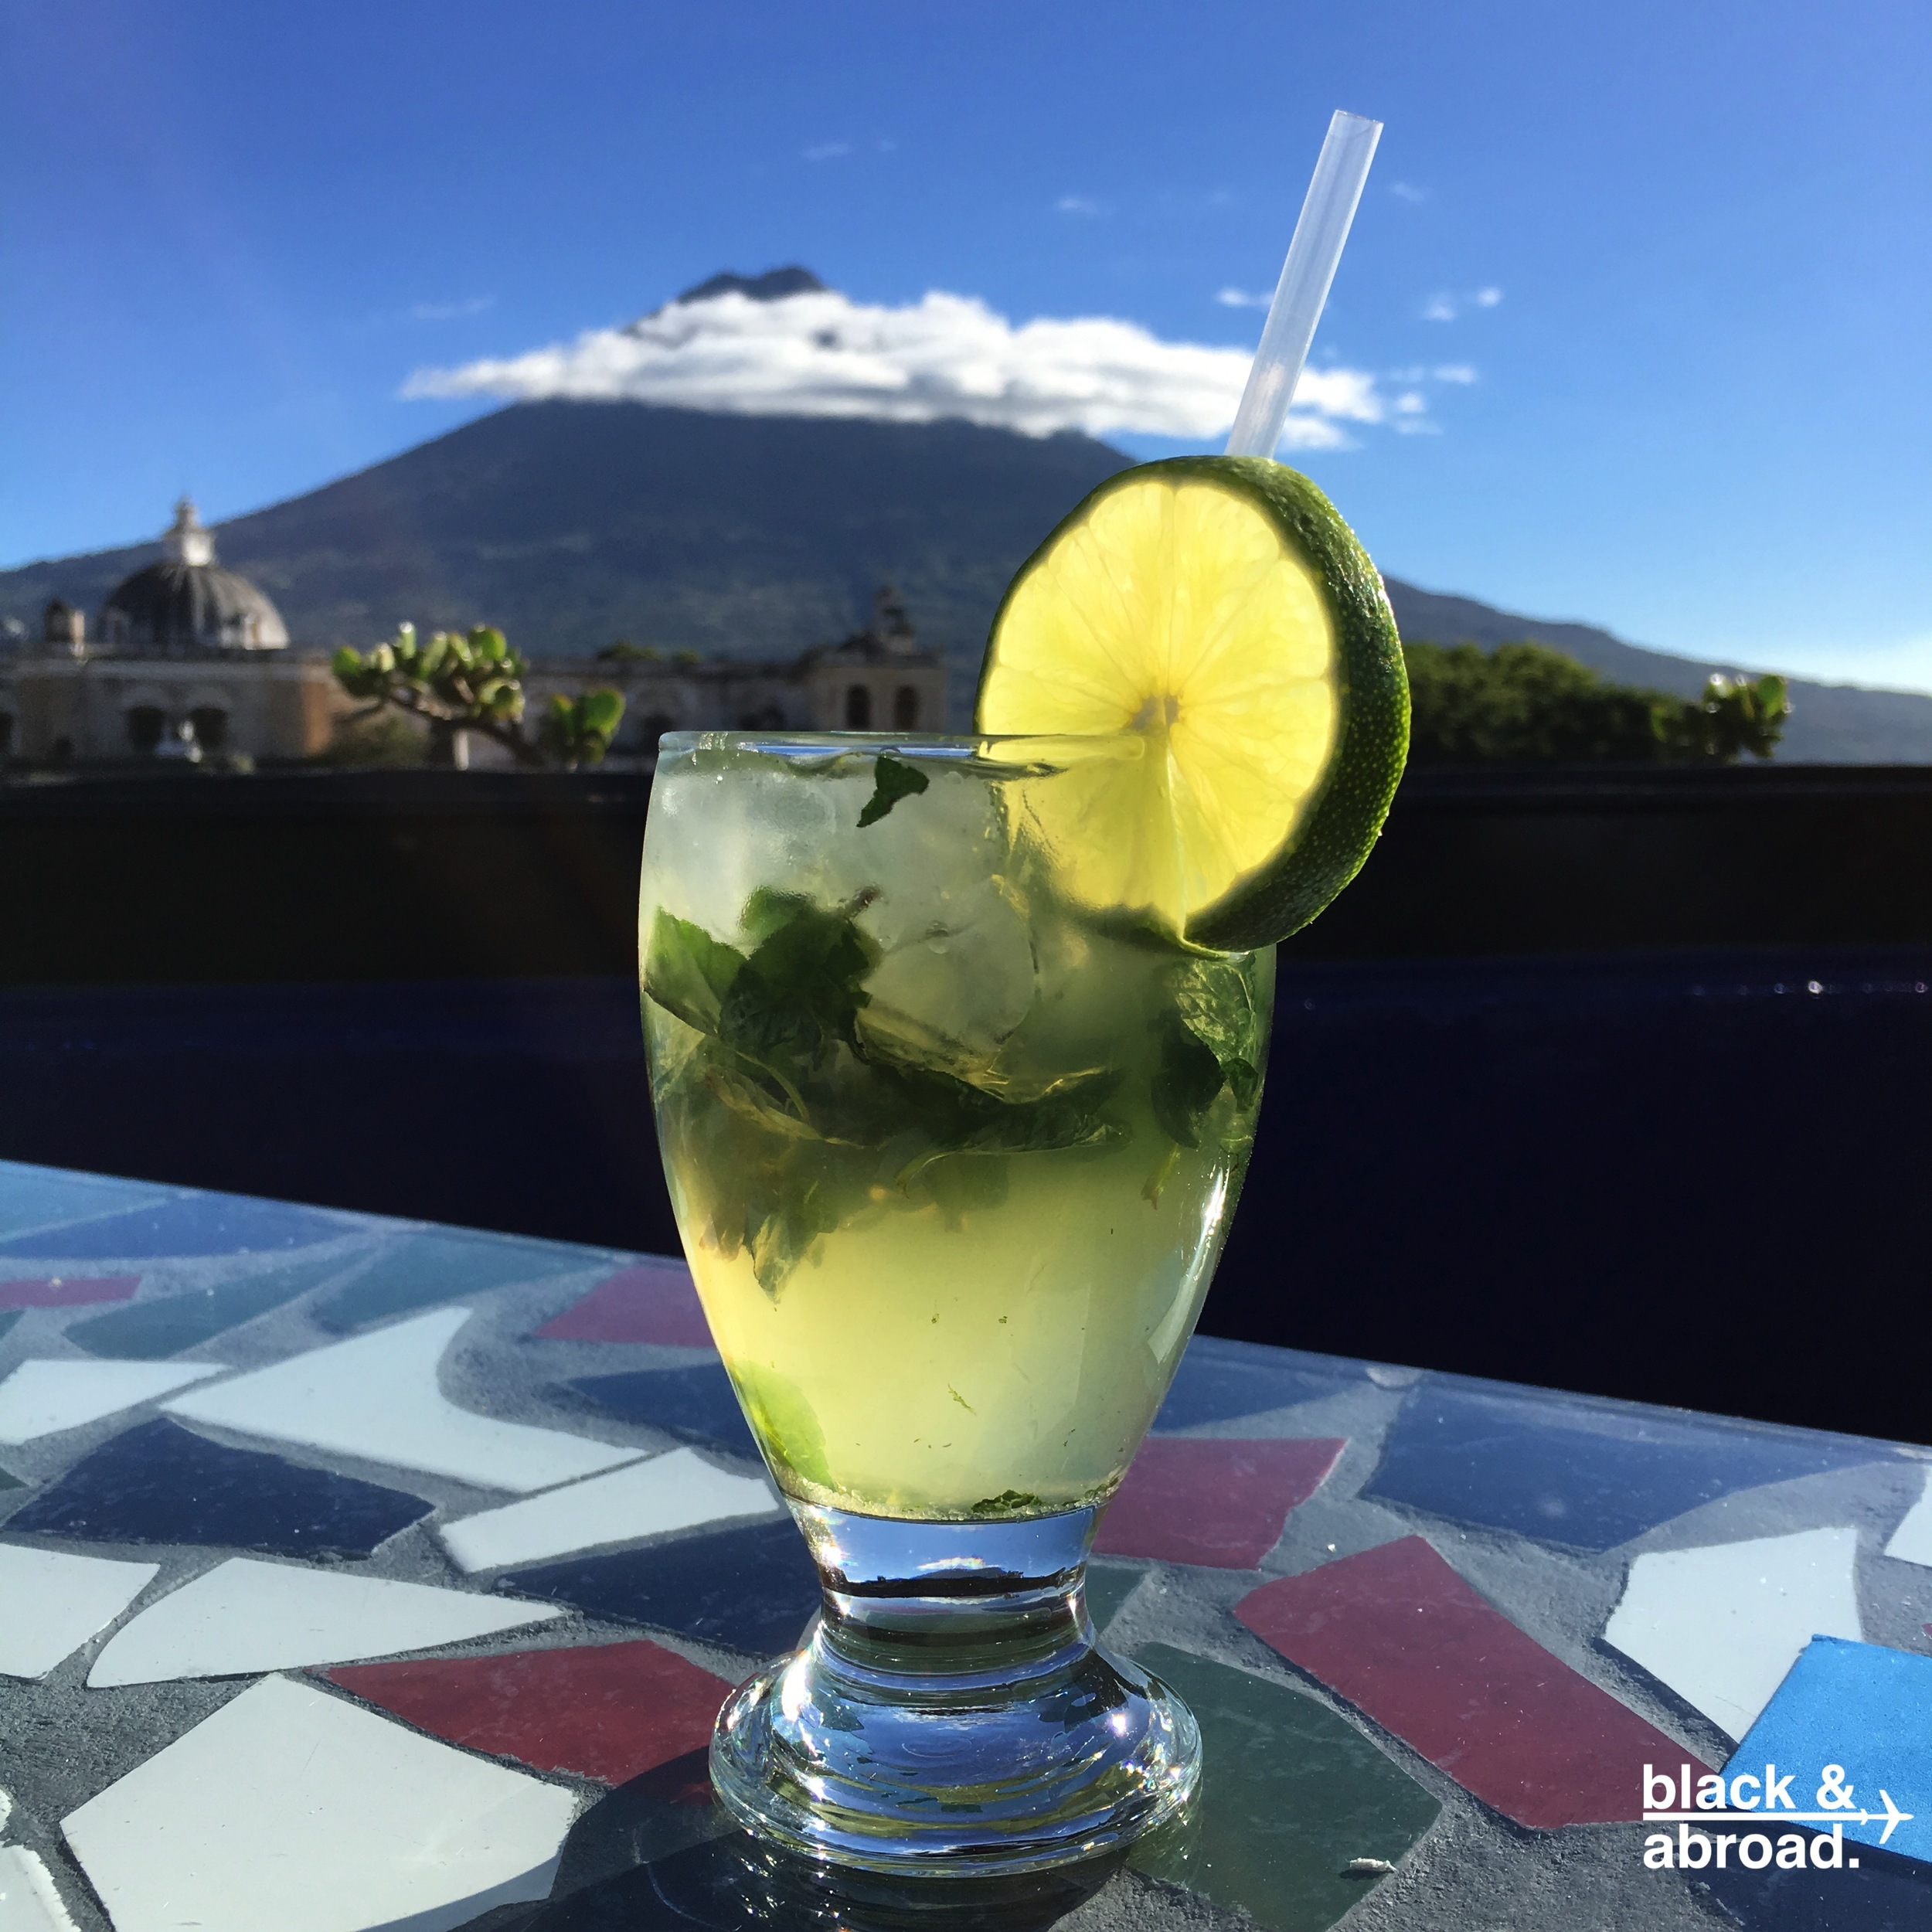 Cafe Sky's rooftop bar has a great view of the city. Order the nachos and a cojito while you enjoy the slight breeze and city sights.